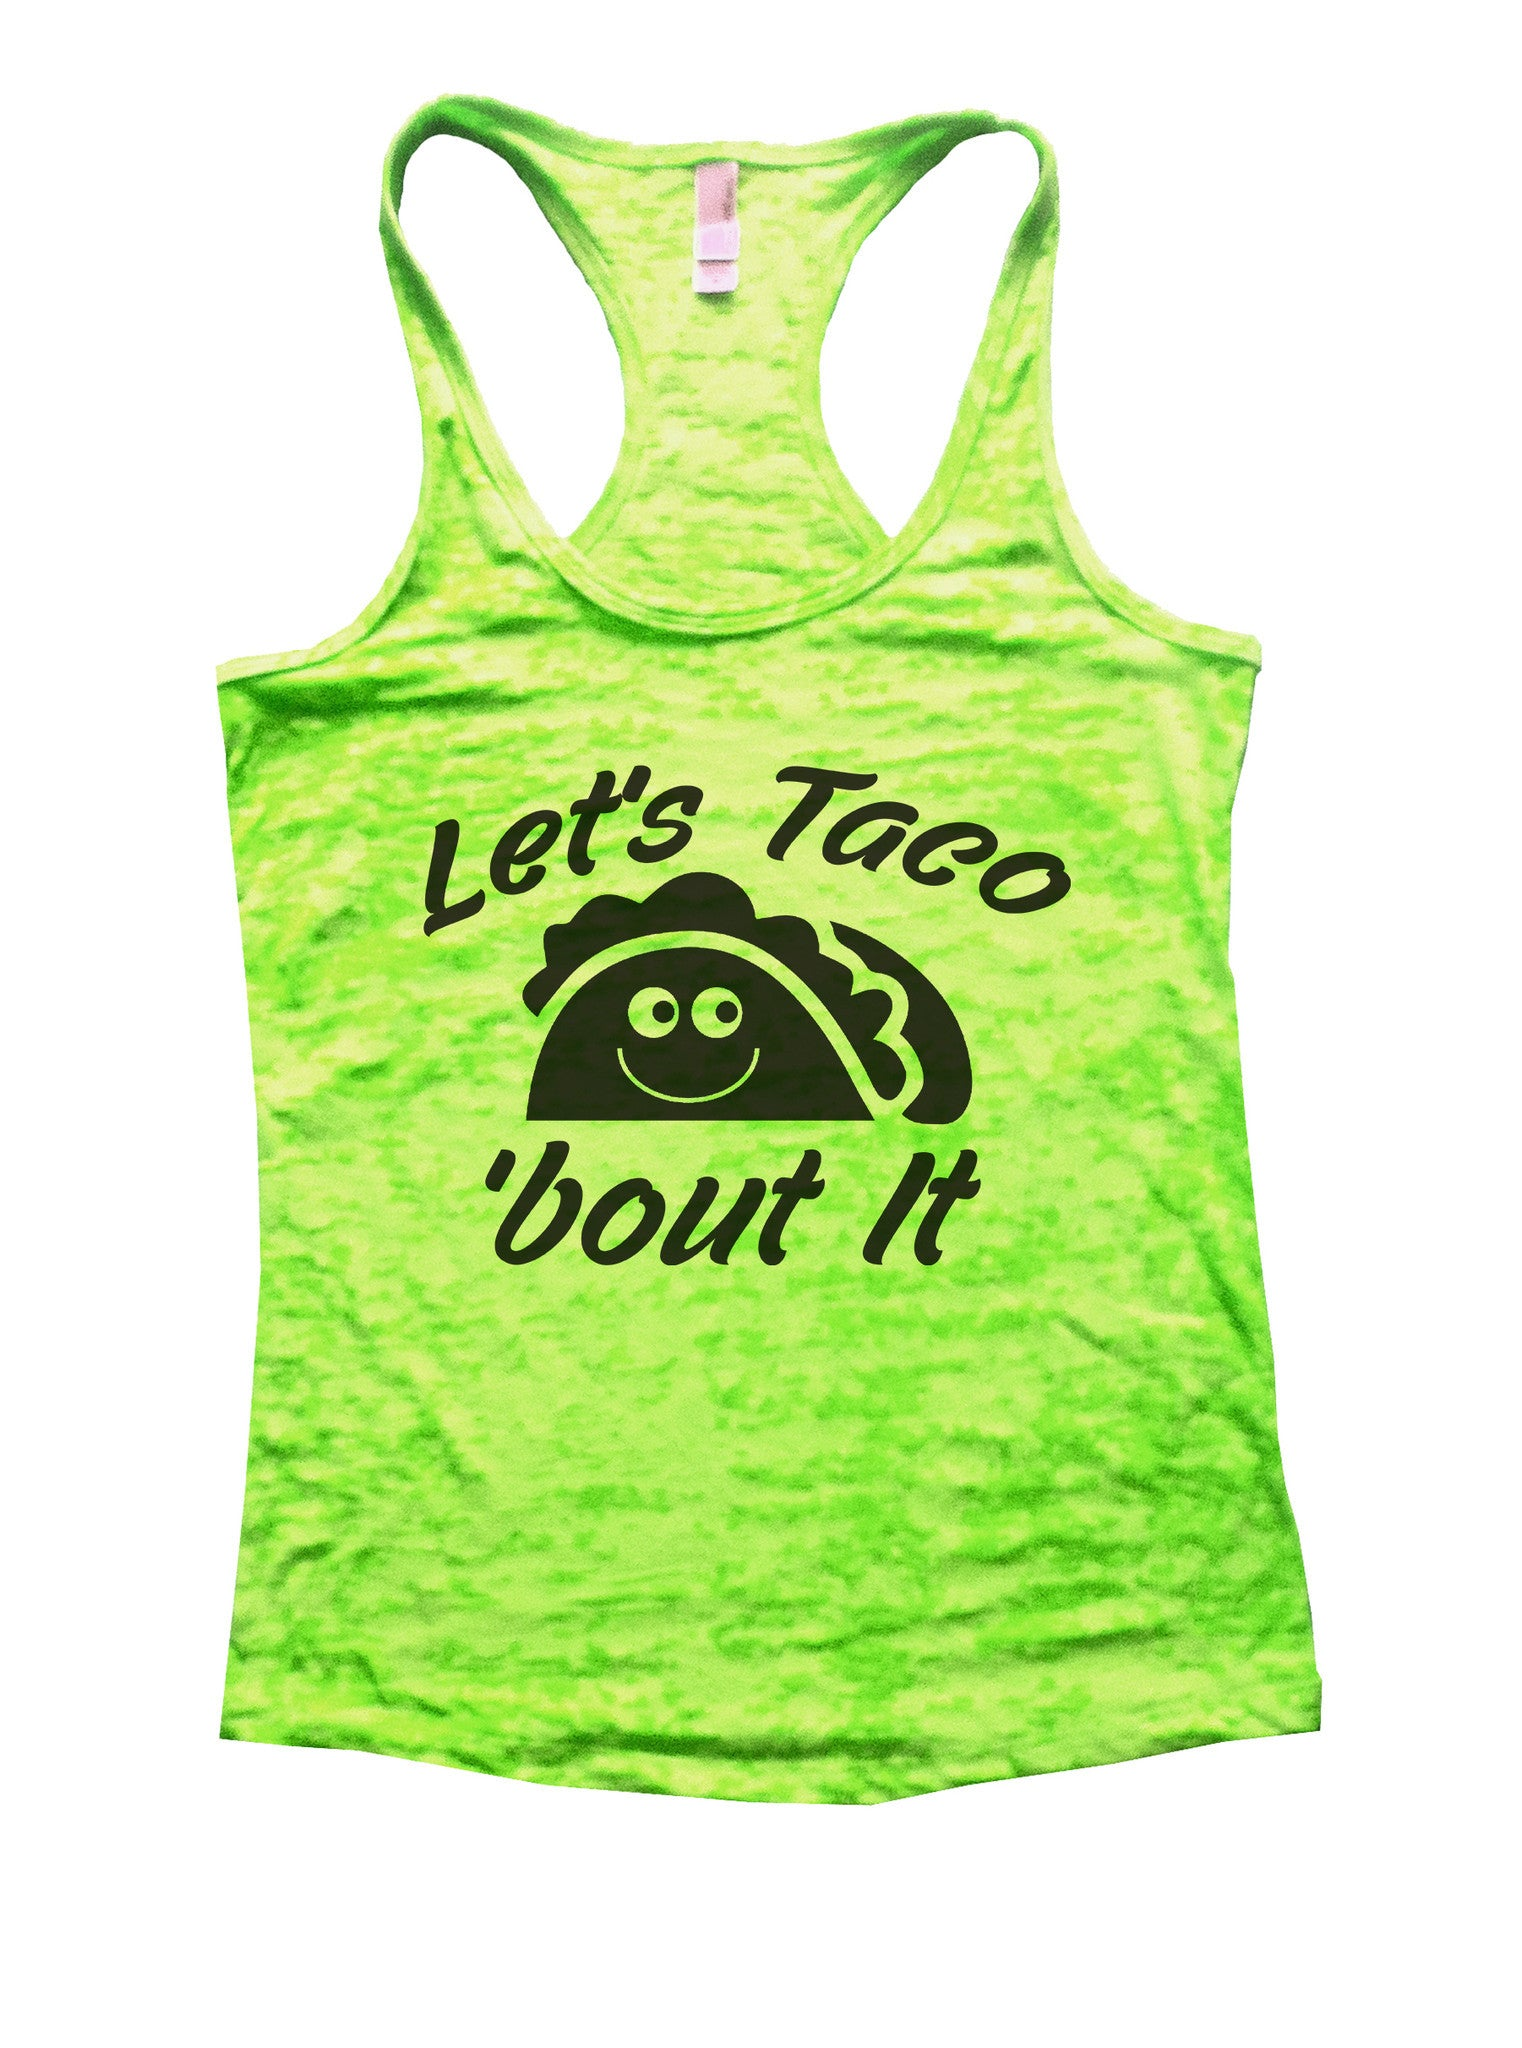 Let's Taco 'Bout It Burnout Tank Top By BurnoutTankTops.com - B860 - Funny Shirts Tank Tops Burnouts and Triblends  - 2